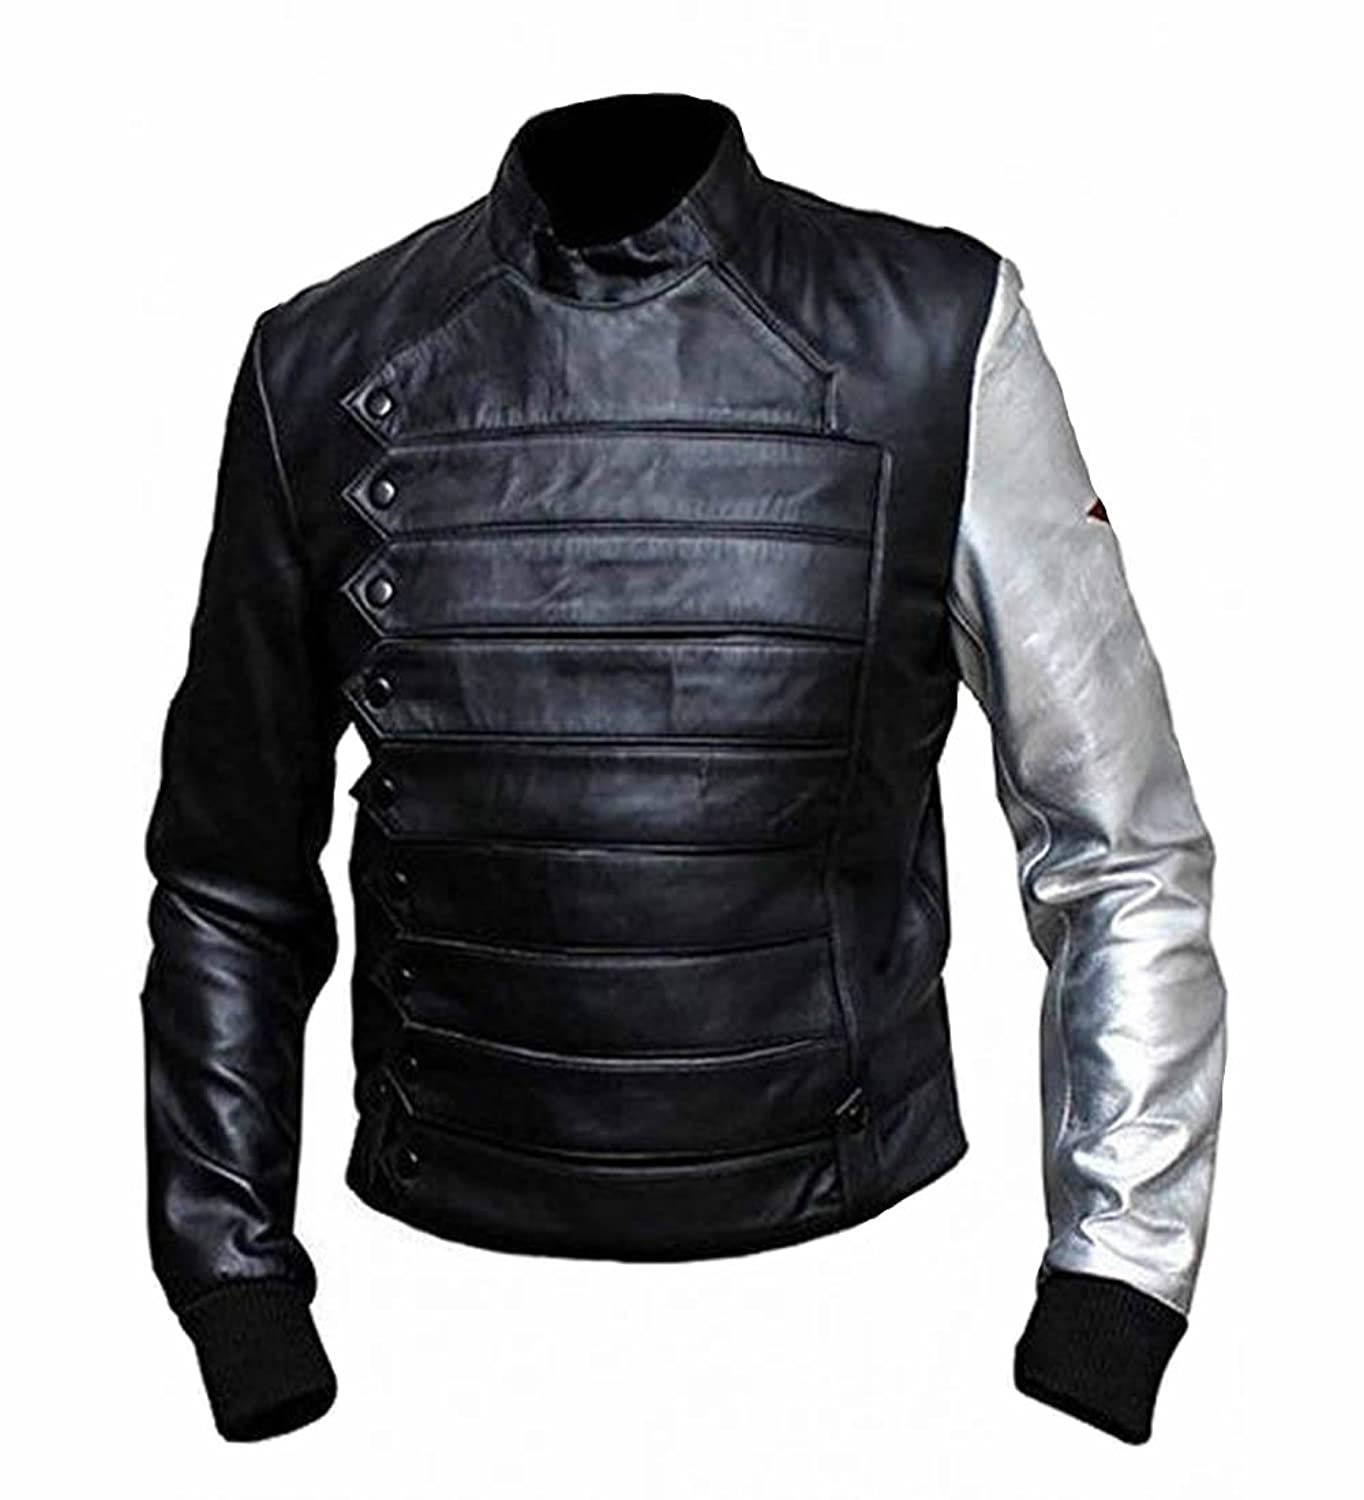 Adult Bucky Barnes Real Sheep Leather Silver Sleeve Jacket - DeluxeAdultCostumes.com